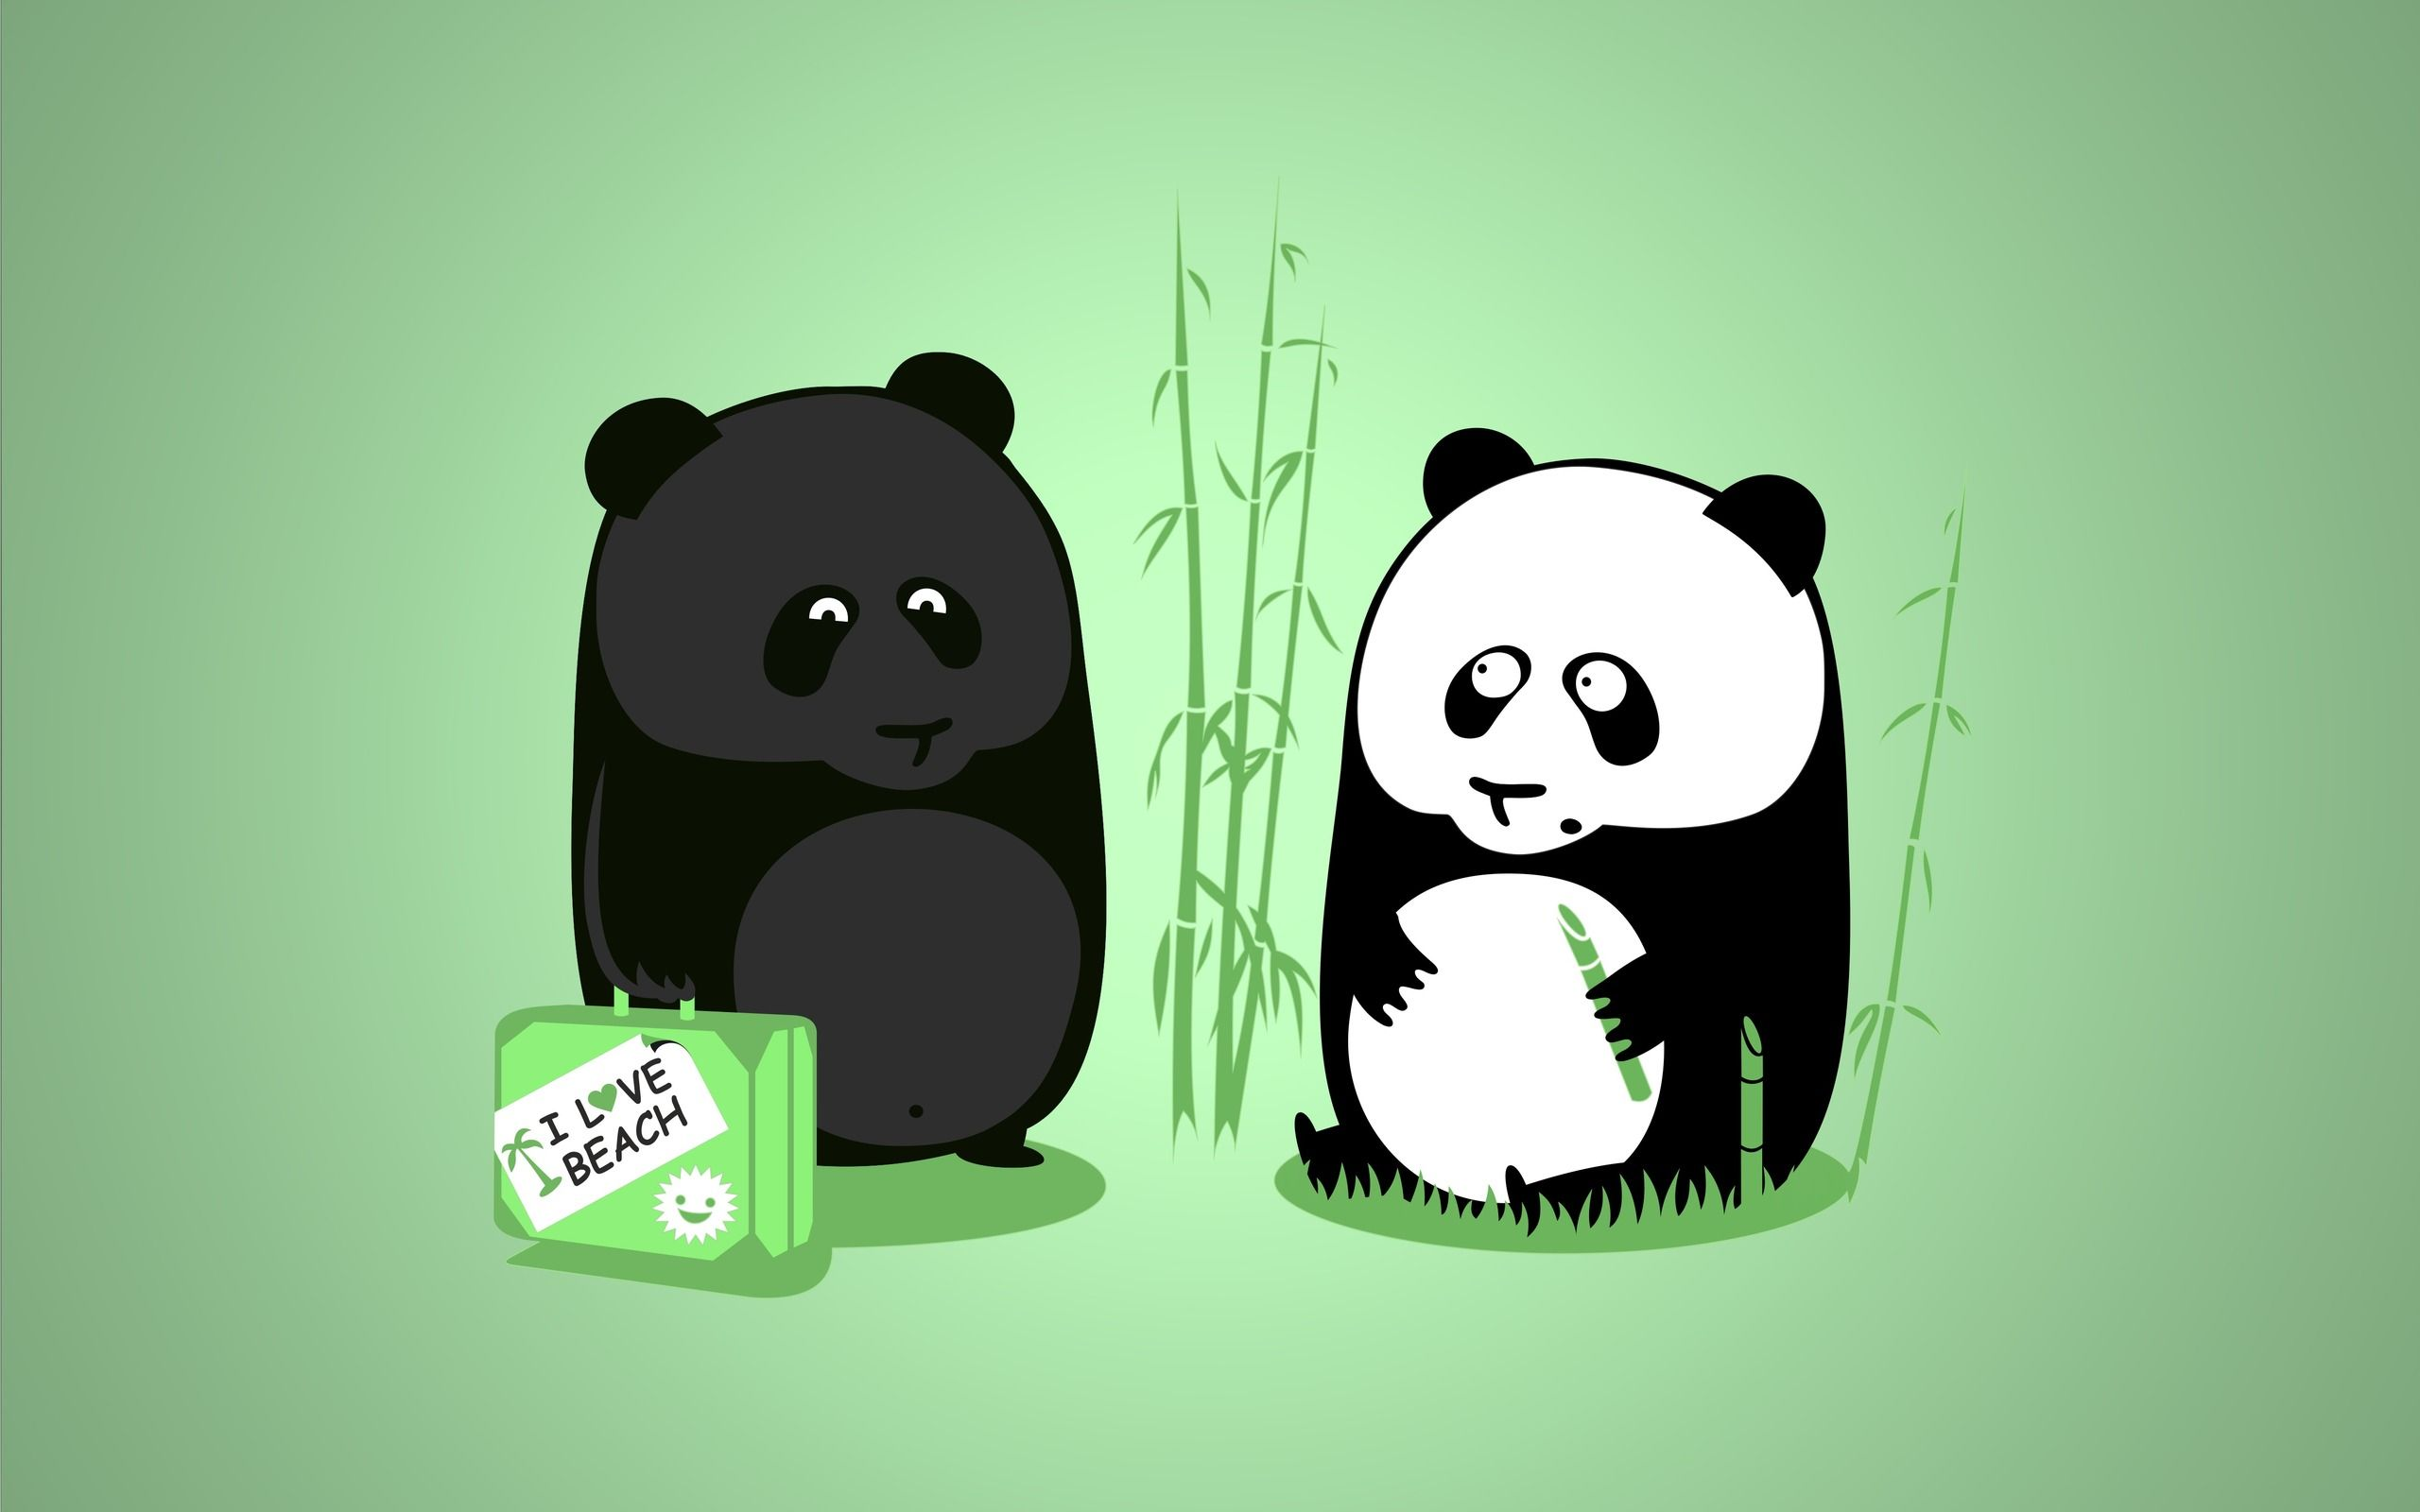 Tanned Panda Wallpaper (14680) - Wallpaperesque